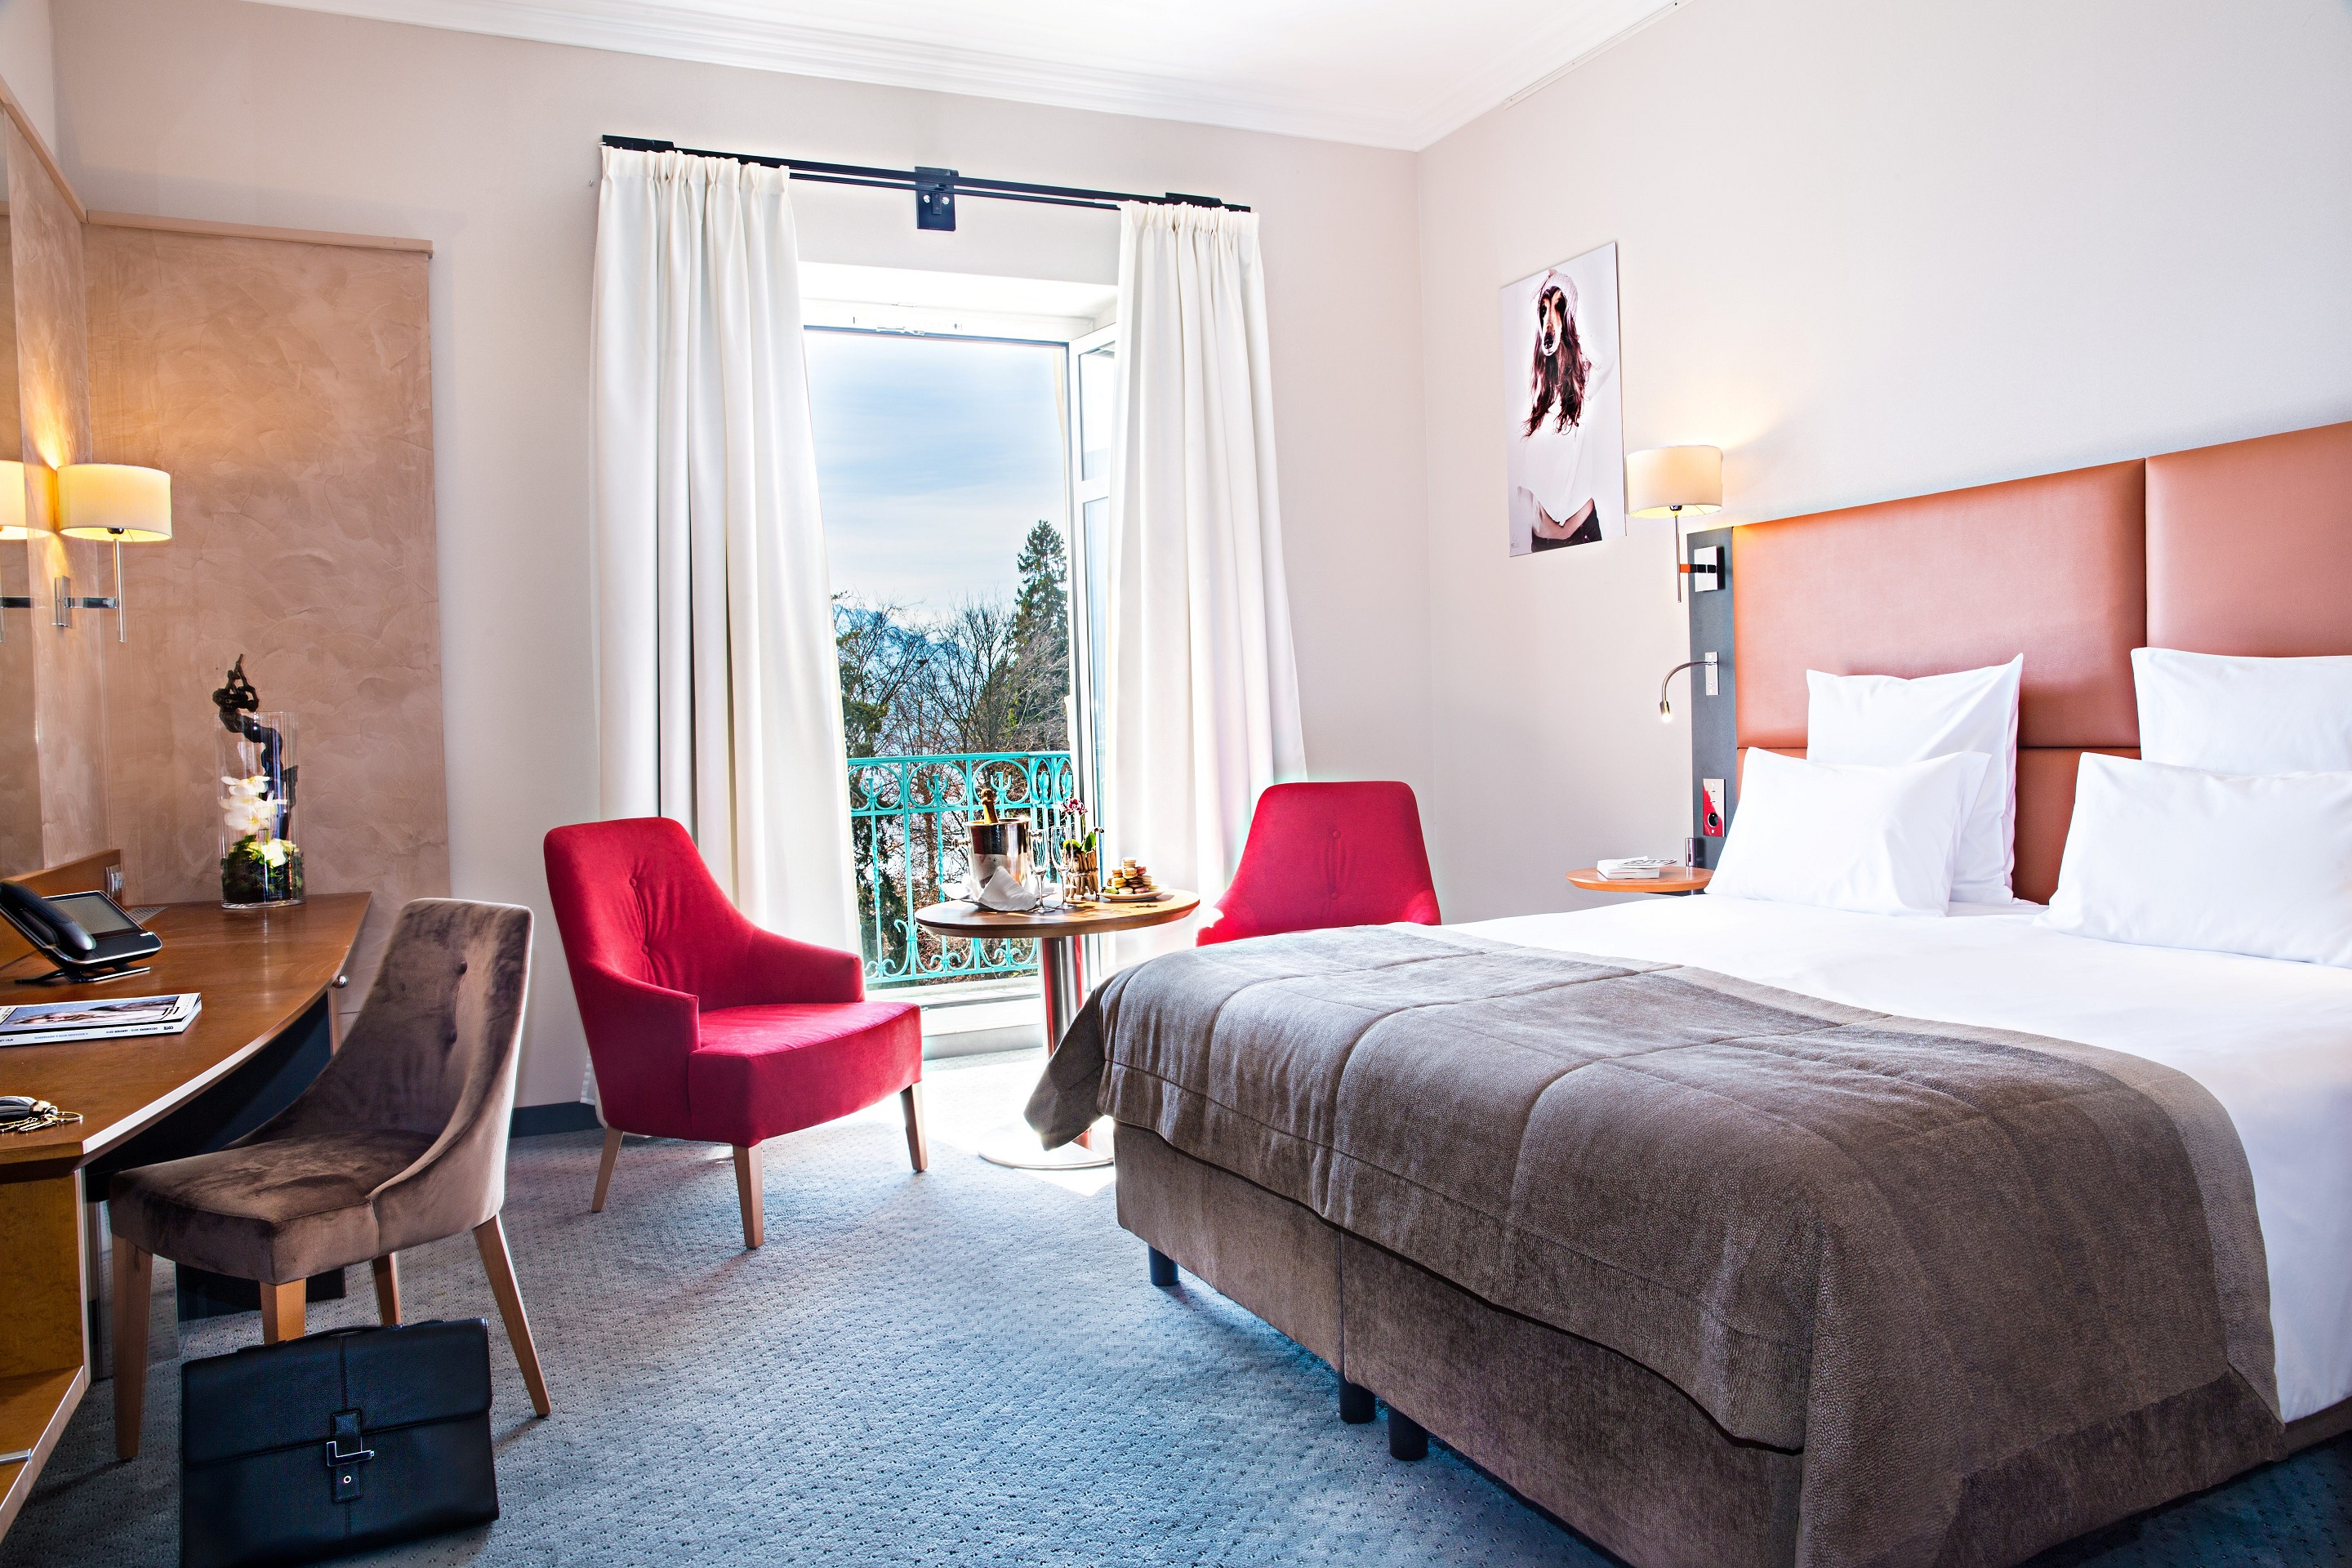 Chambre - Imperial Palace Annecy - Photo DgC Photography (1)